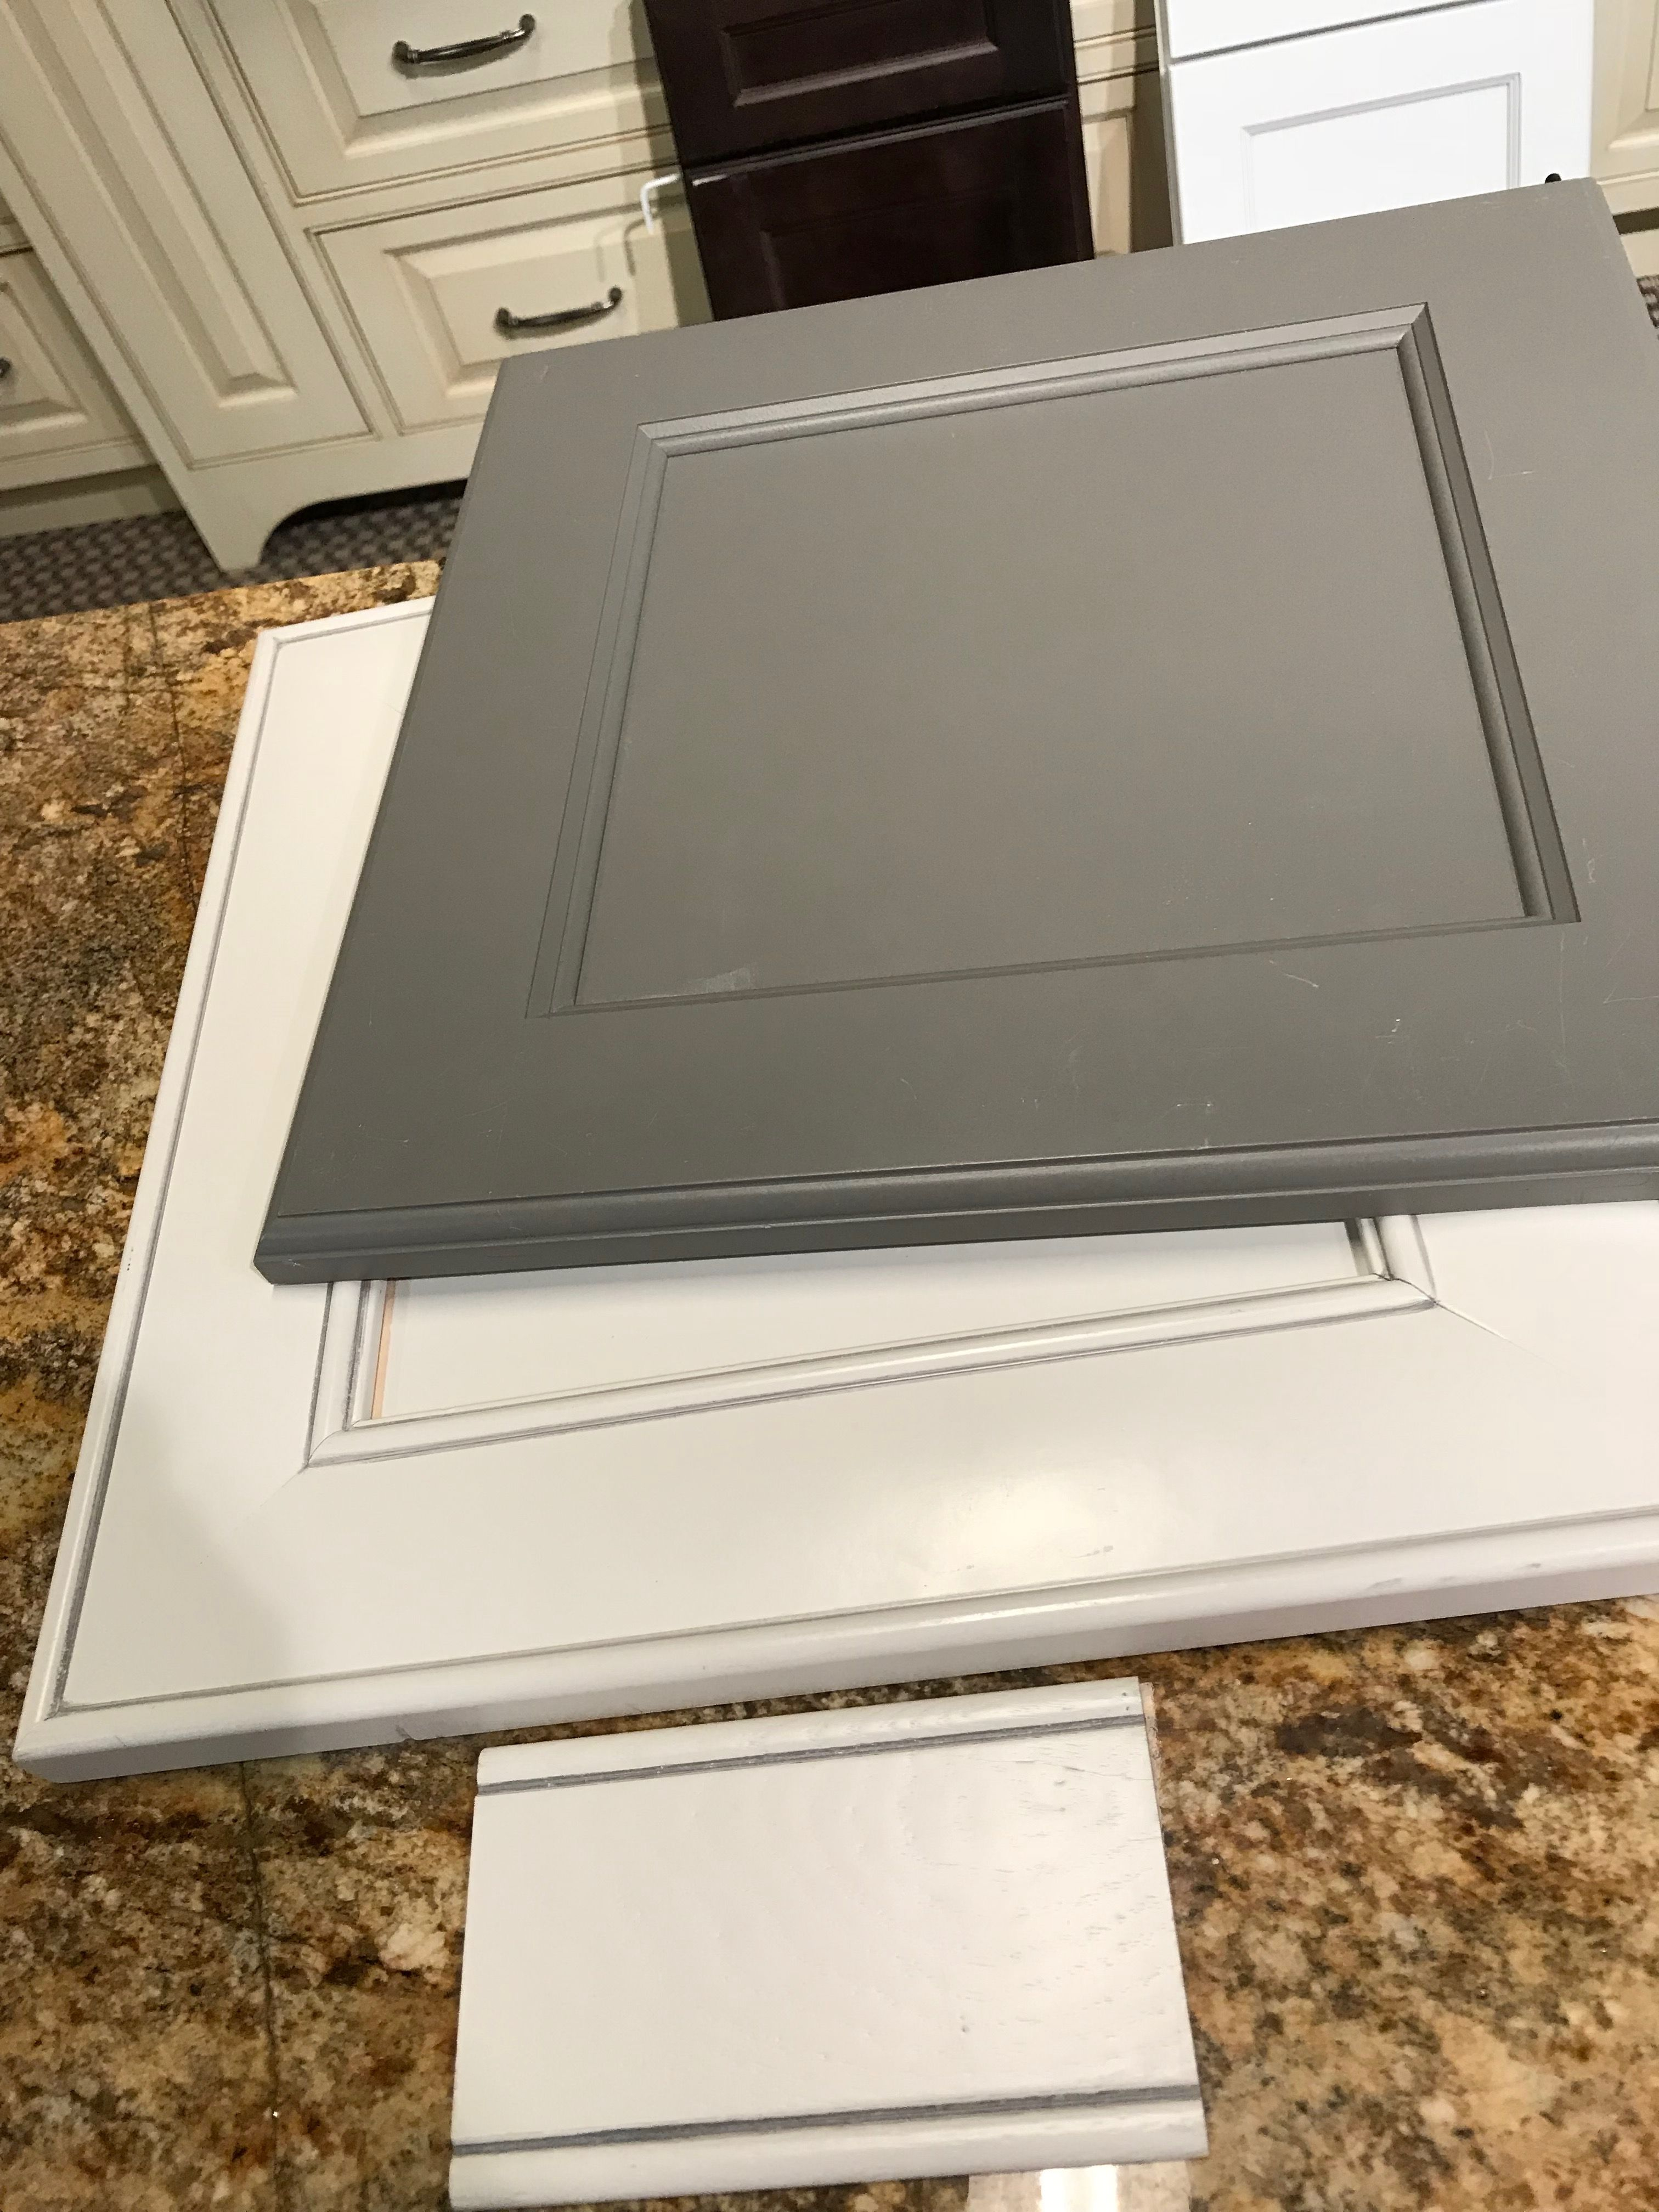 Colors For Kitchen Cabinets Divinity With Pewter Glaze For Perimeter Flint Dark Grey For Island In Norcraft Kitchen Cabinet Colors Coffee Table New Homes